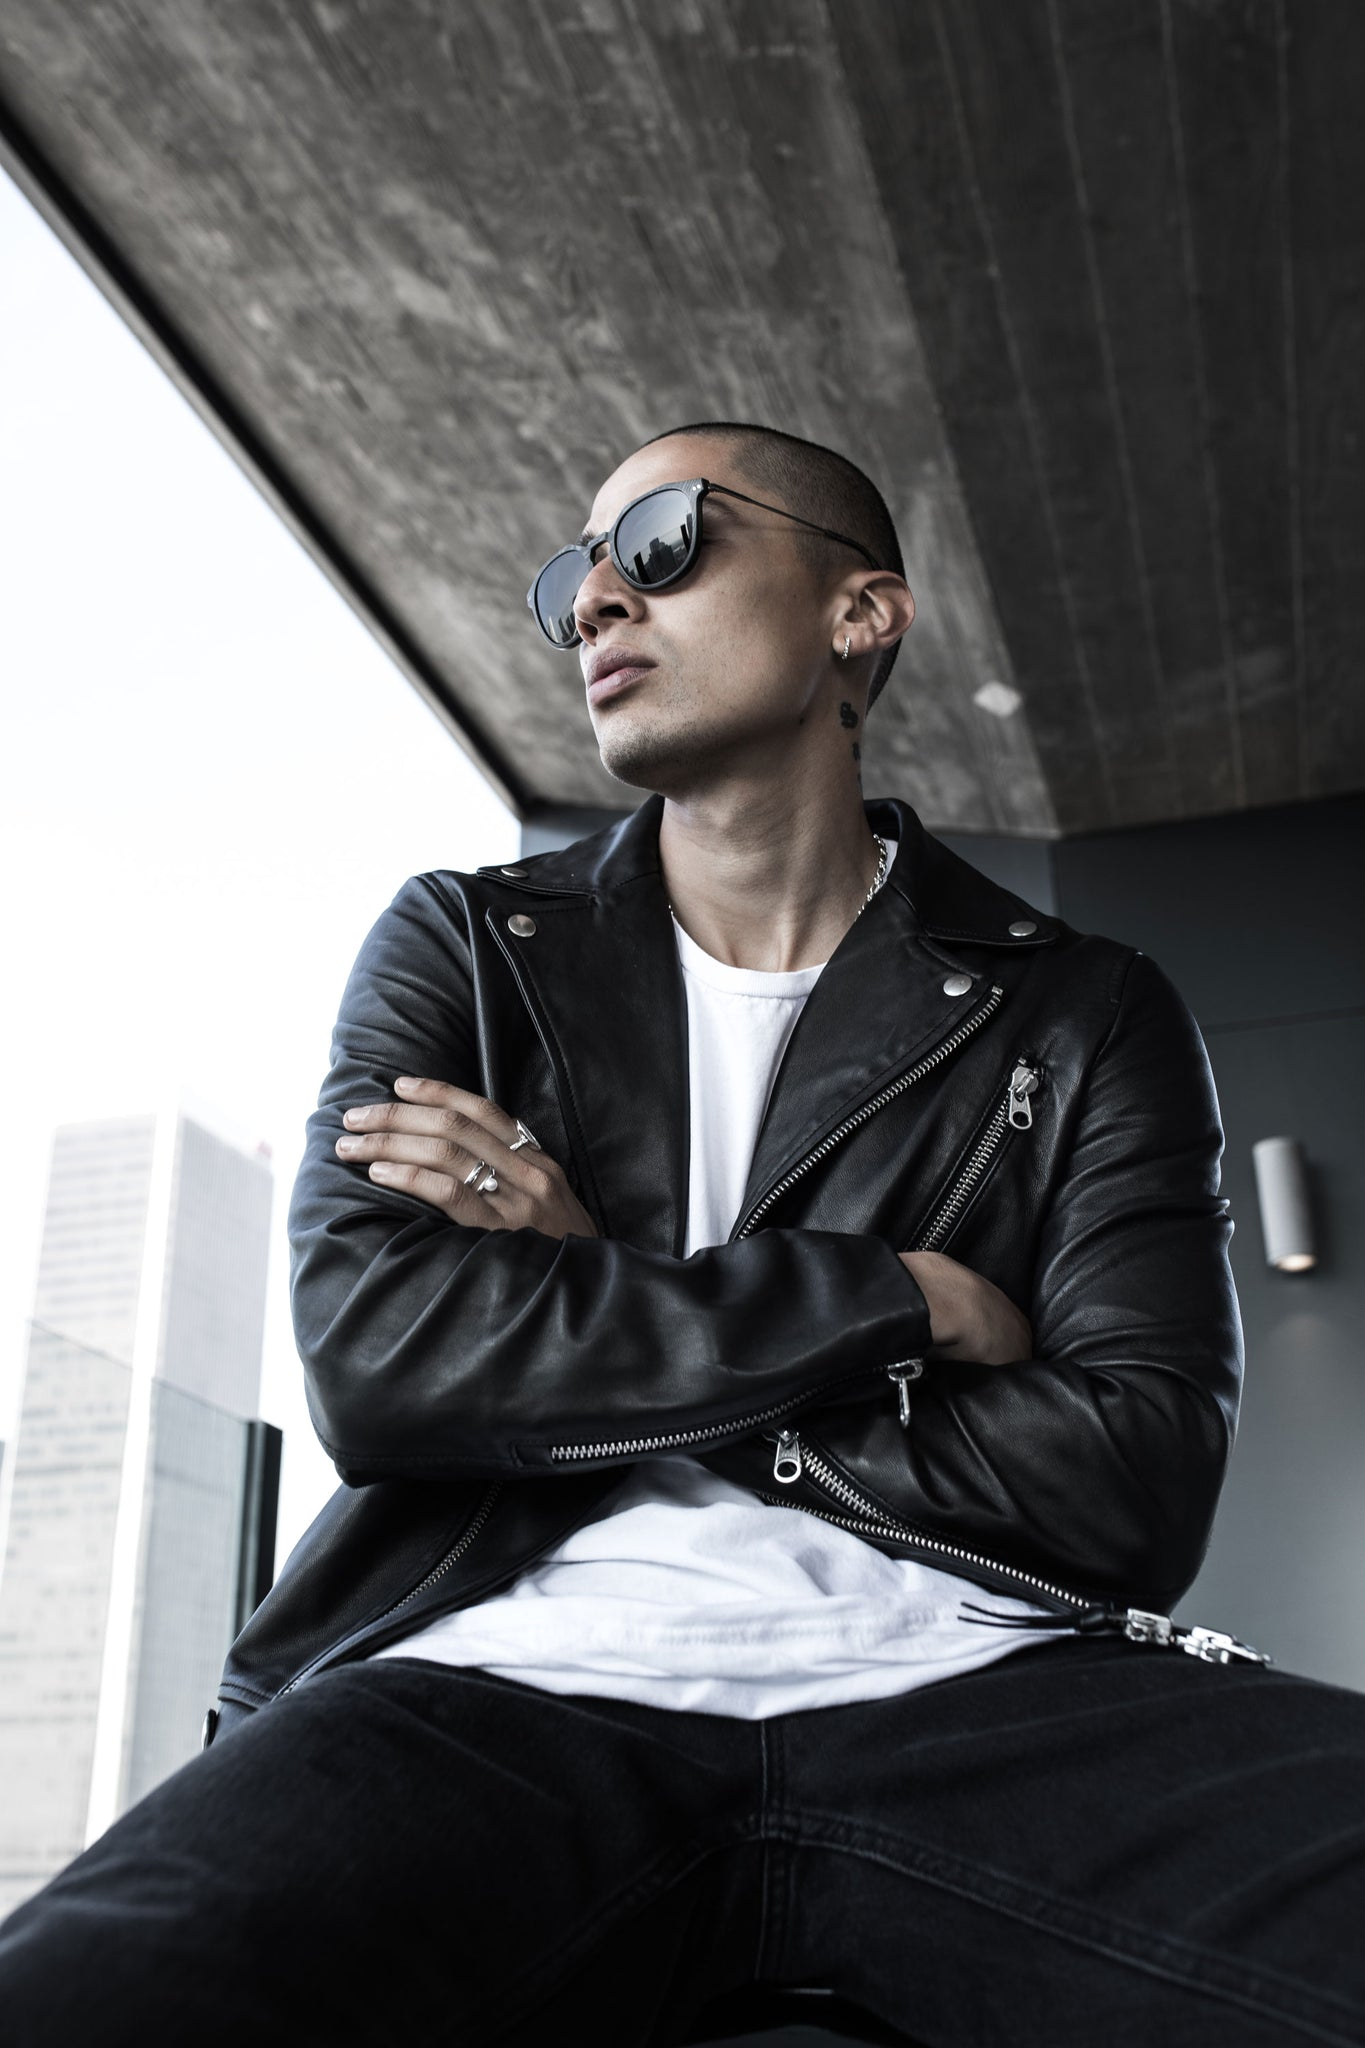 Alan x Roveri Eyewear at Atelier in downtown Los Angeles with Paid2shoot, latest photoshoot with CLM7 black on black.